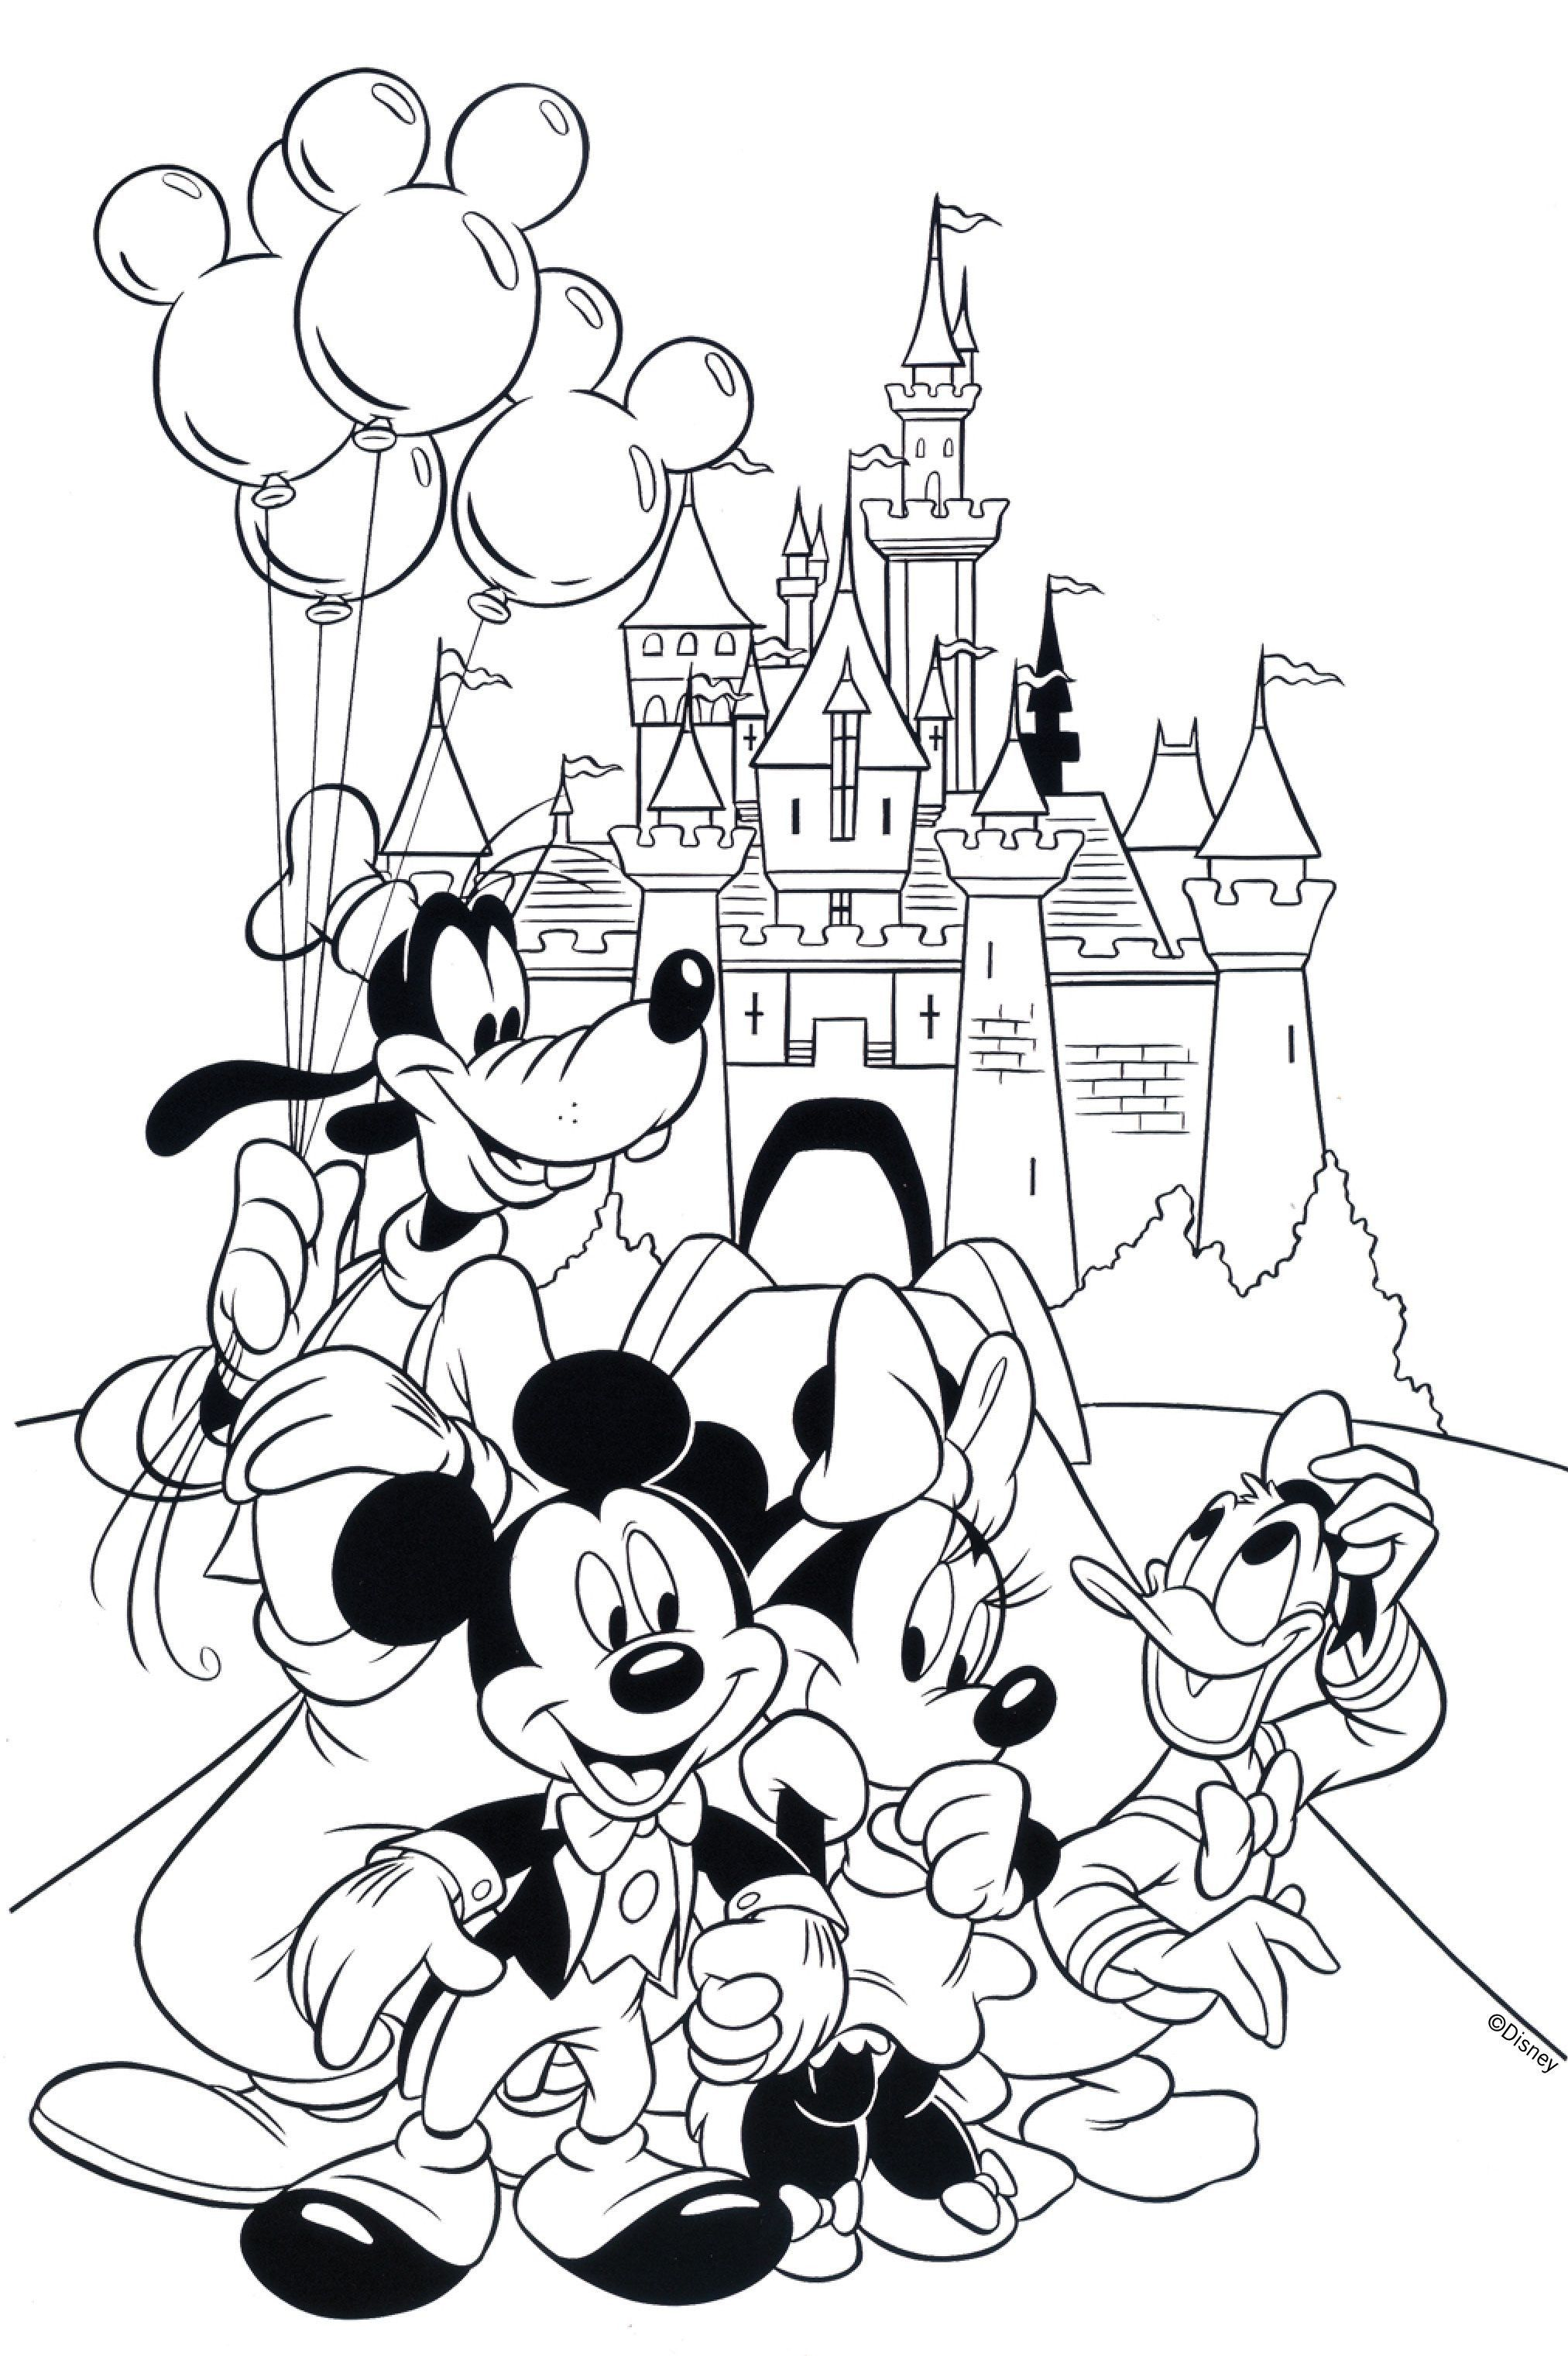 Free Disney Coloring Pages  Mickey mouse coloring pages, Disney